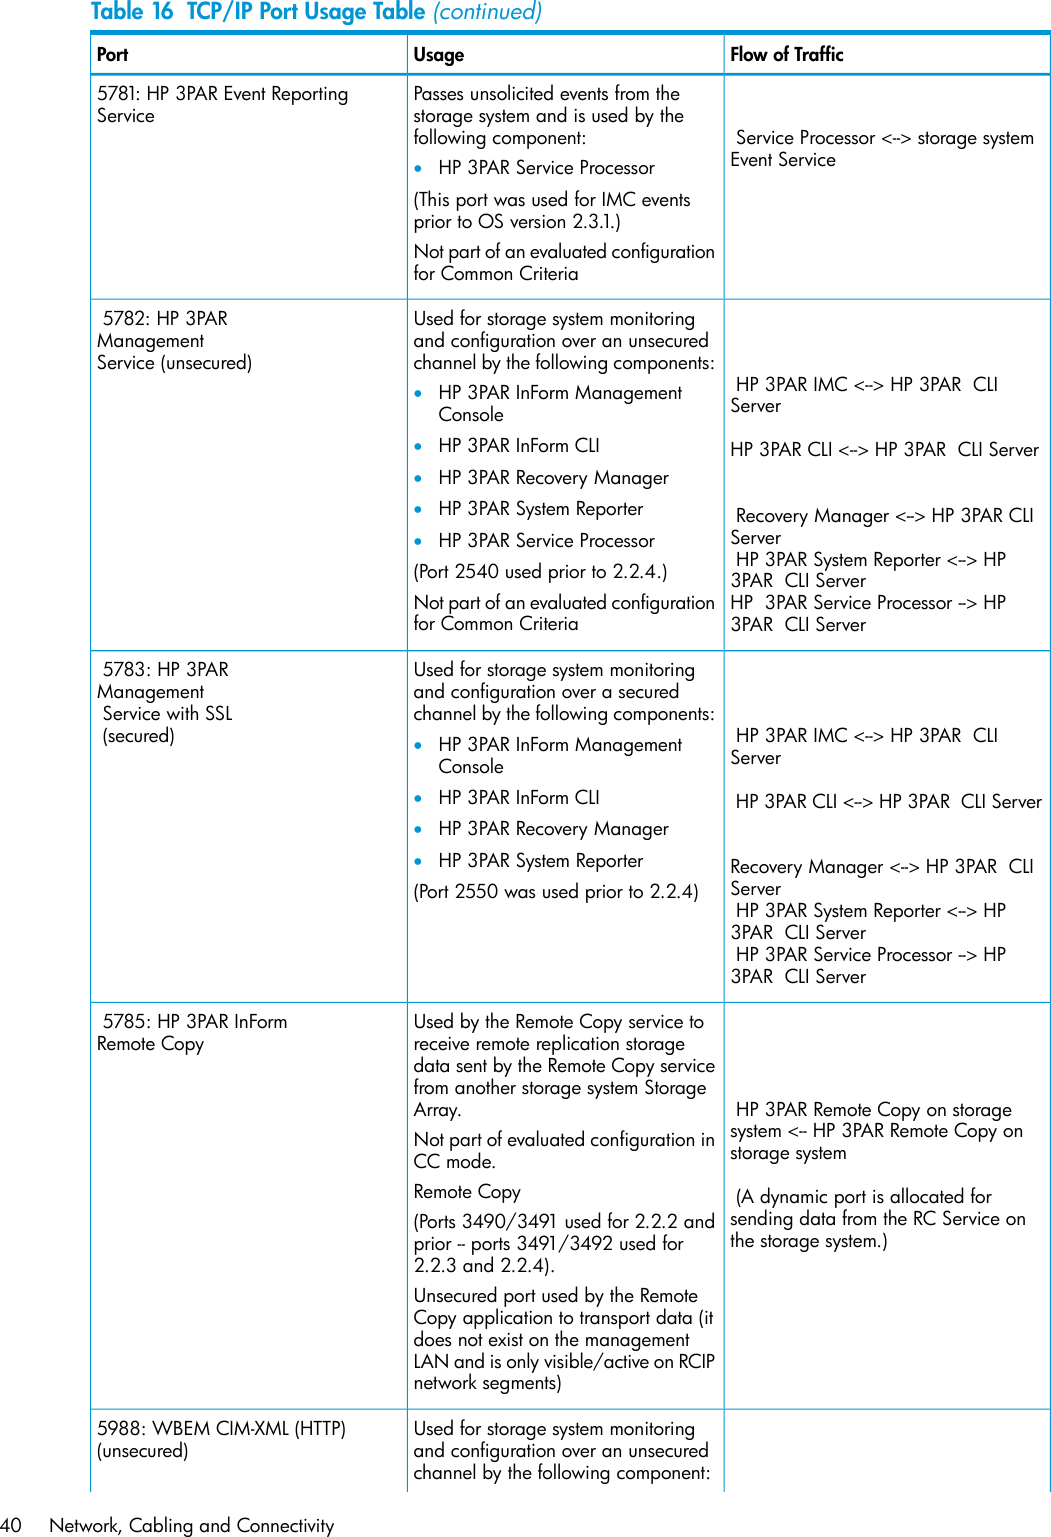 Hp 3Par S200 Base Reference Guide S Class/T Class Storage